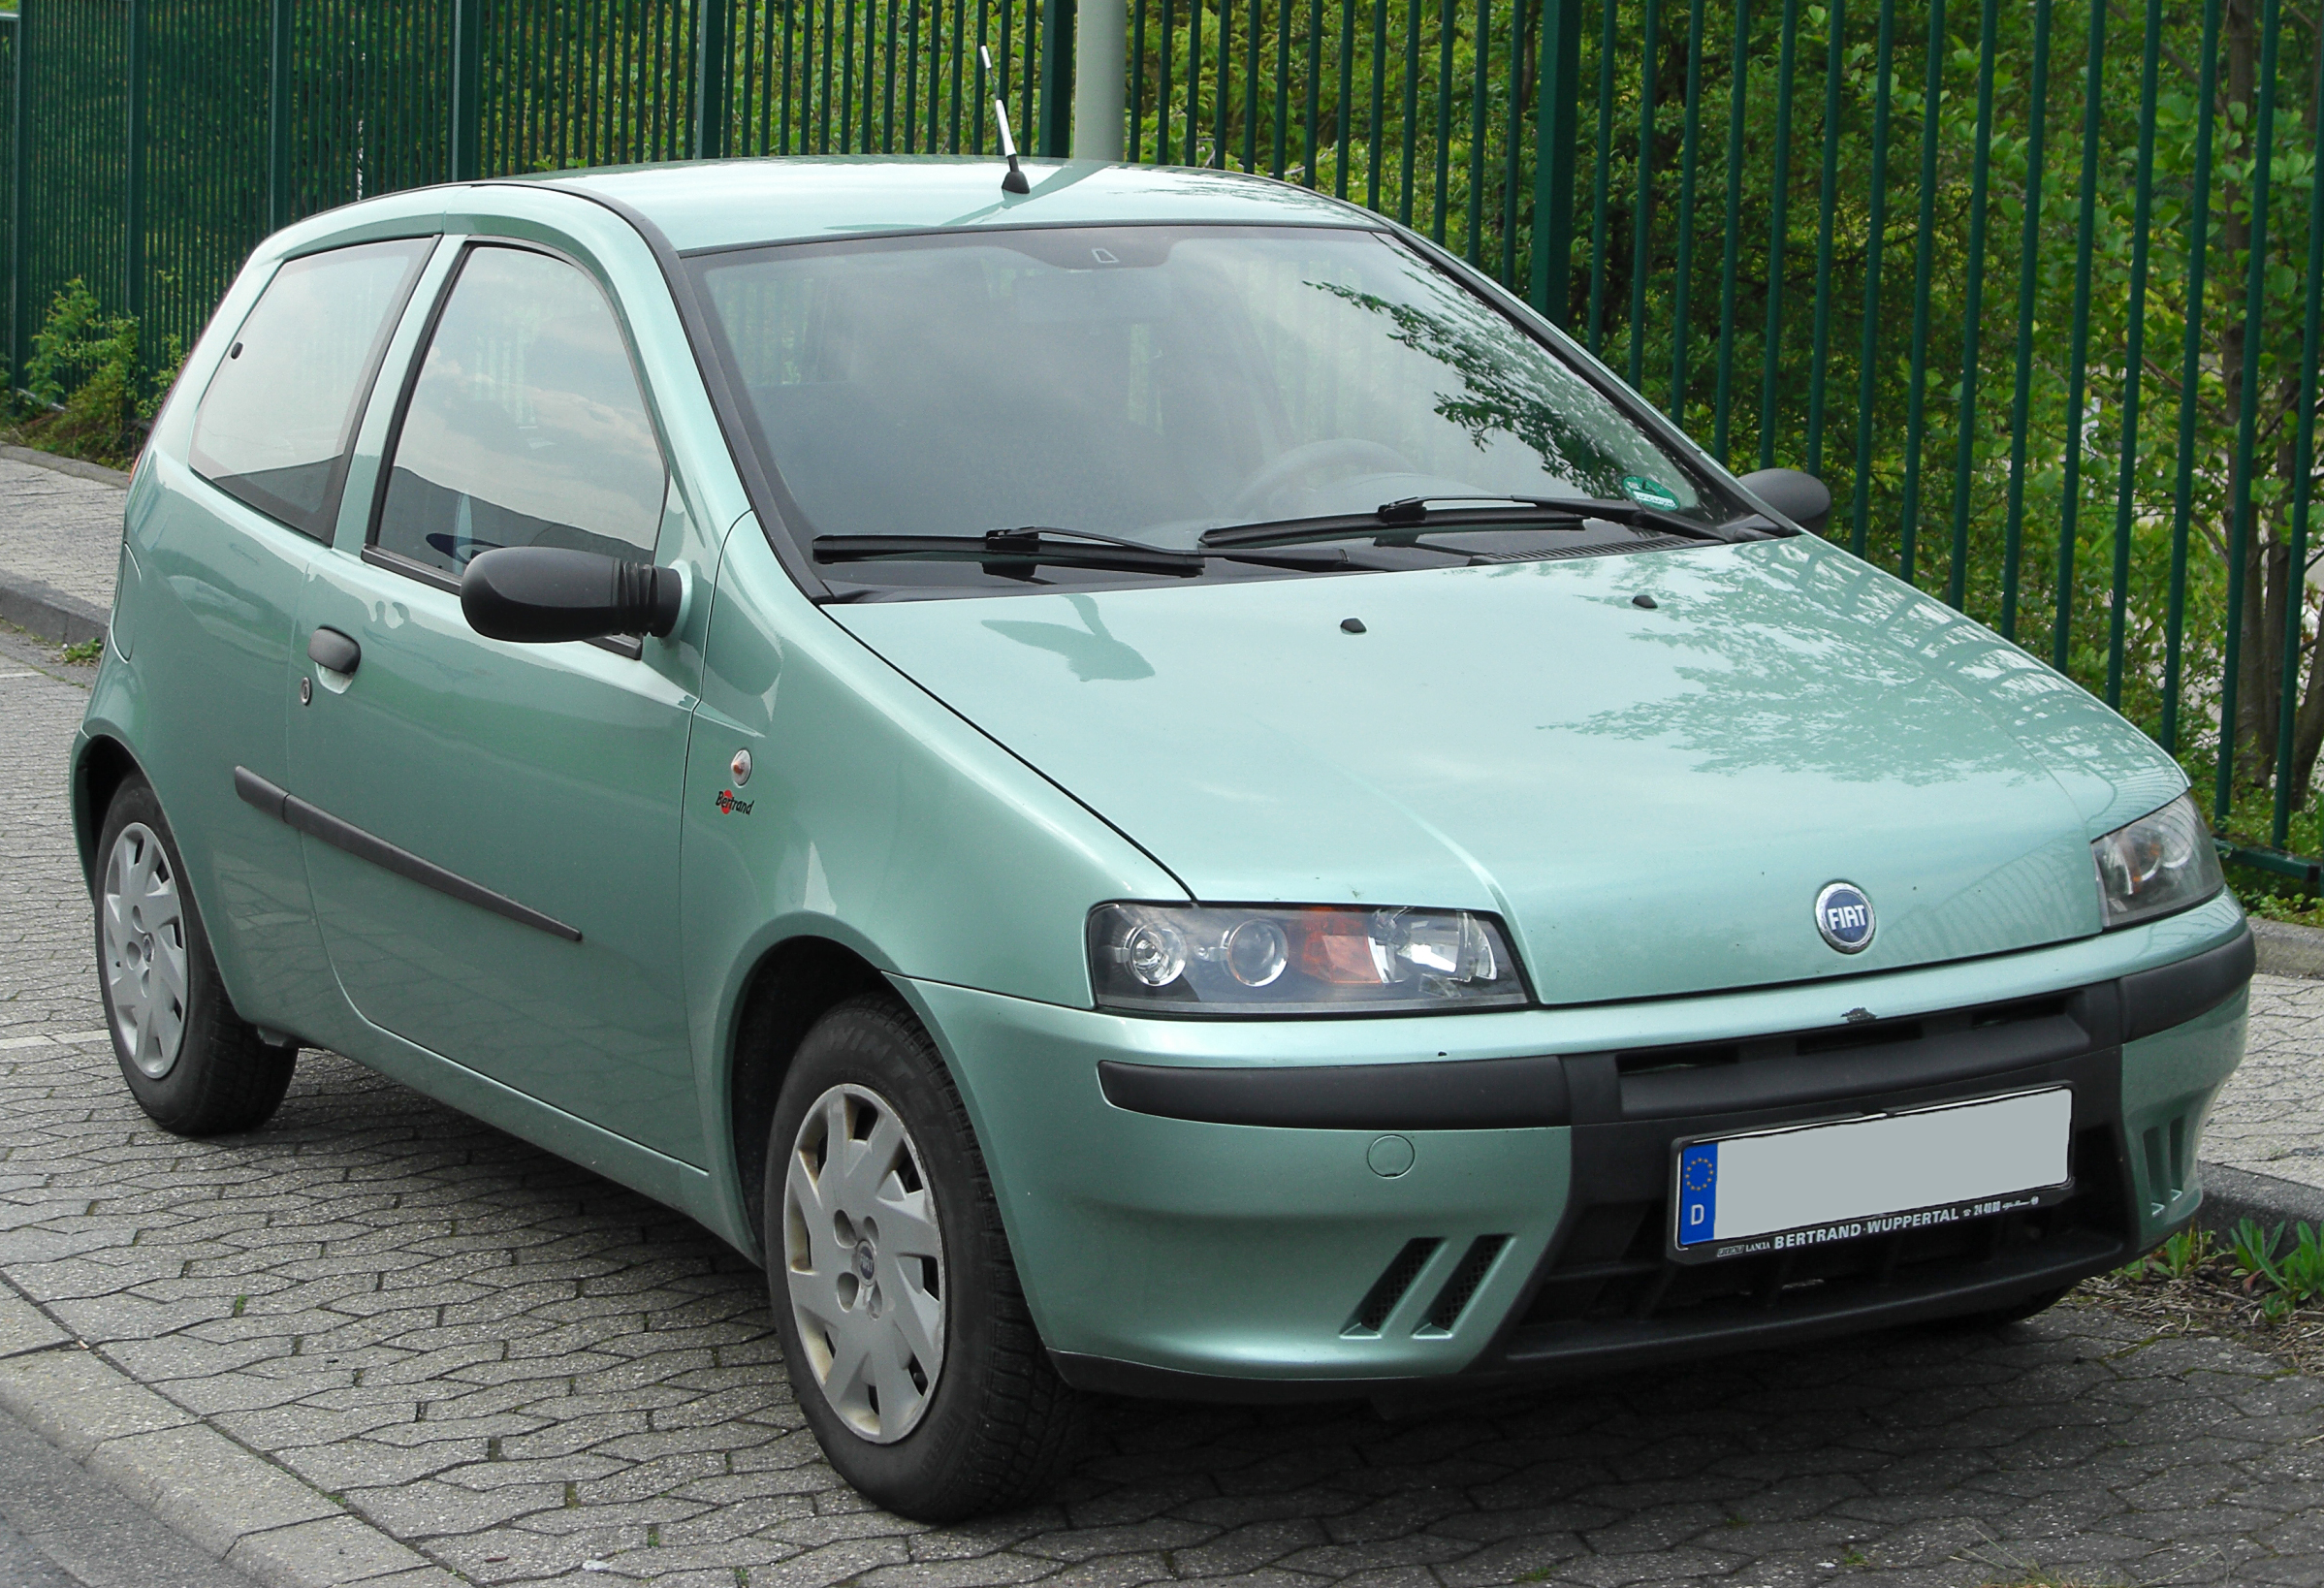 Fiat Punto II 1999 - 2003 Hatchback 3 door #5